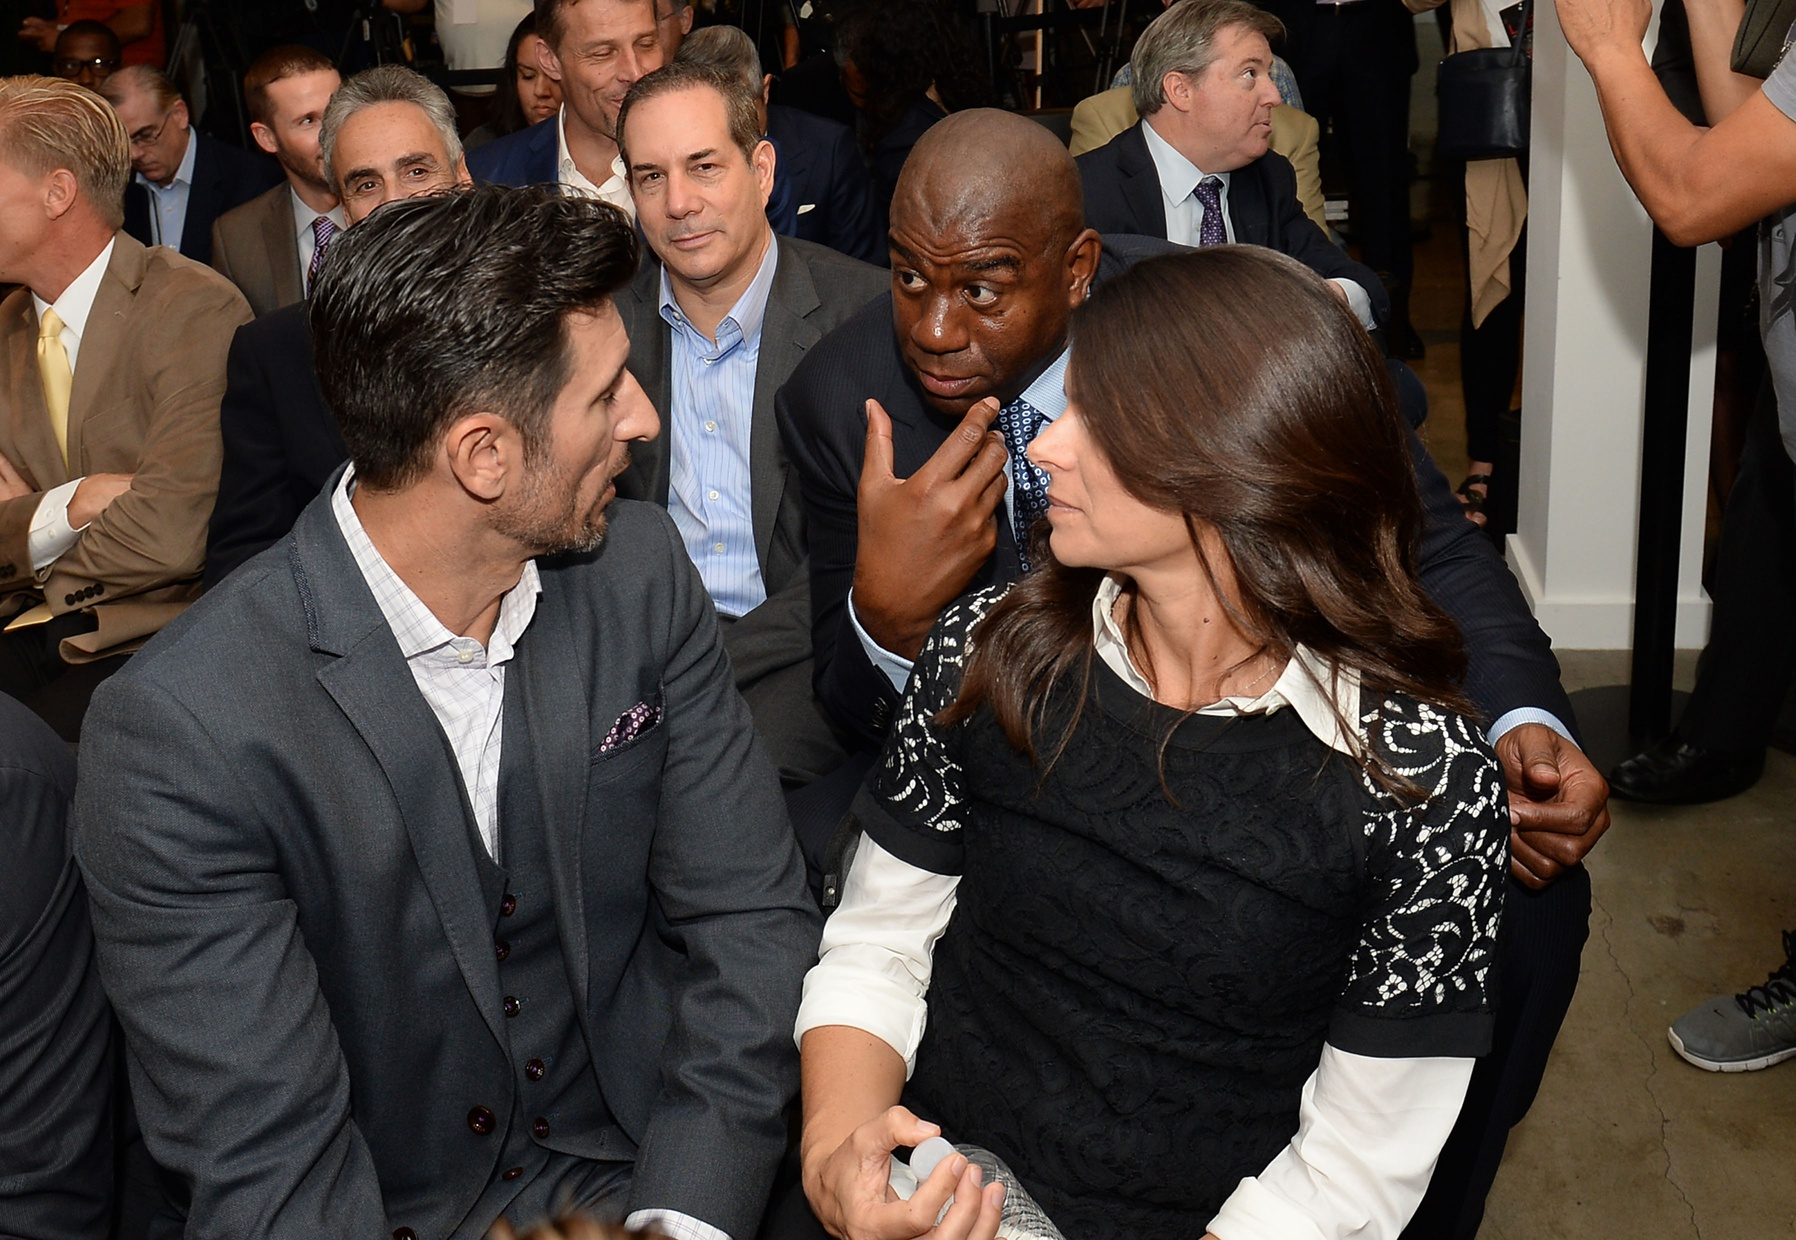 Mia Hamm is part-owner of LAFC, along with husband Nomar Garciaparra and Lakers legend Magic Johnson. (USA Today Images)